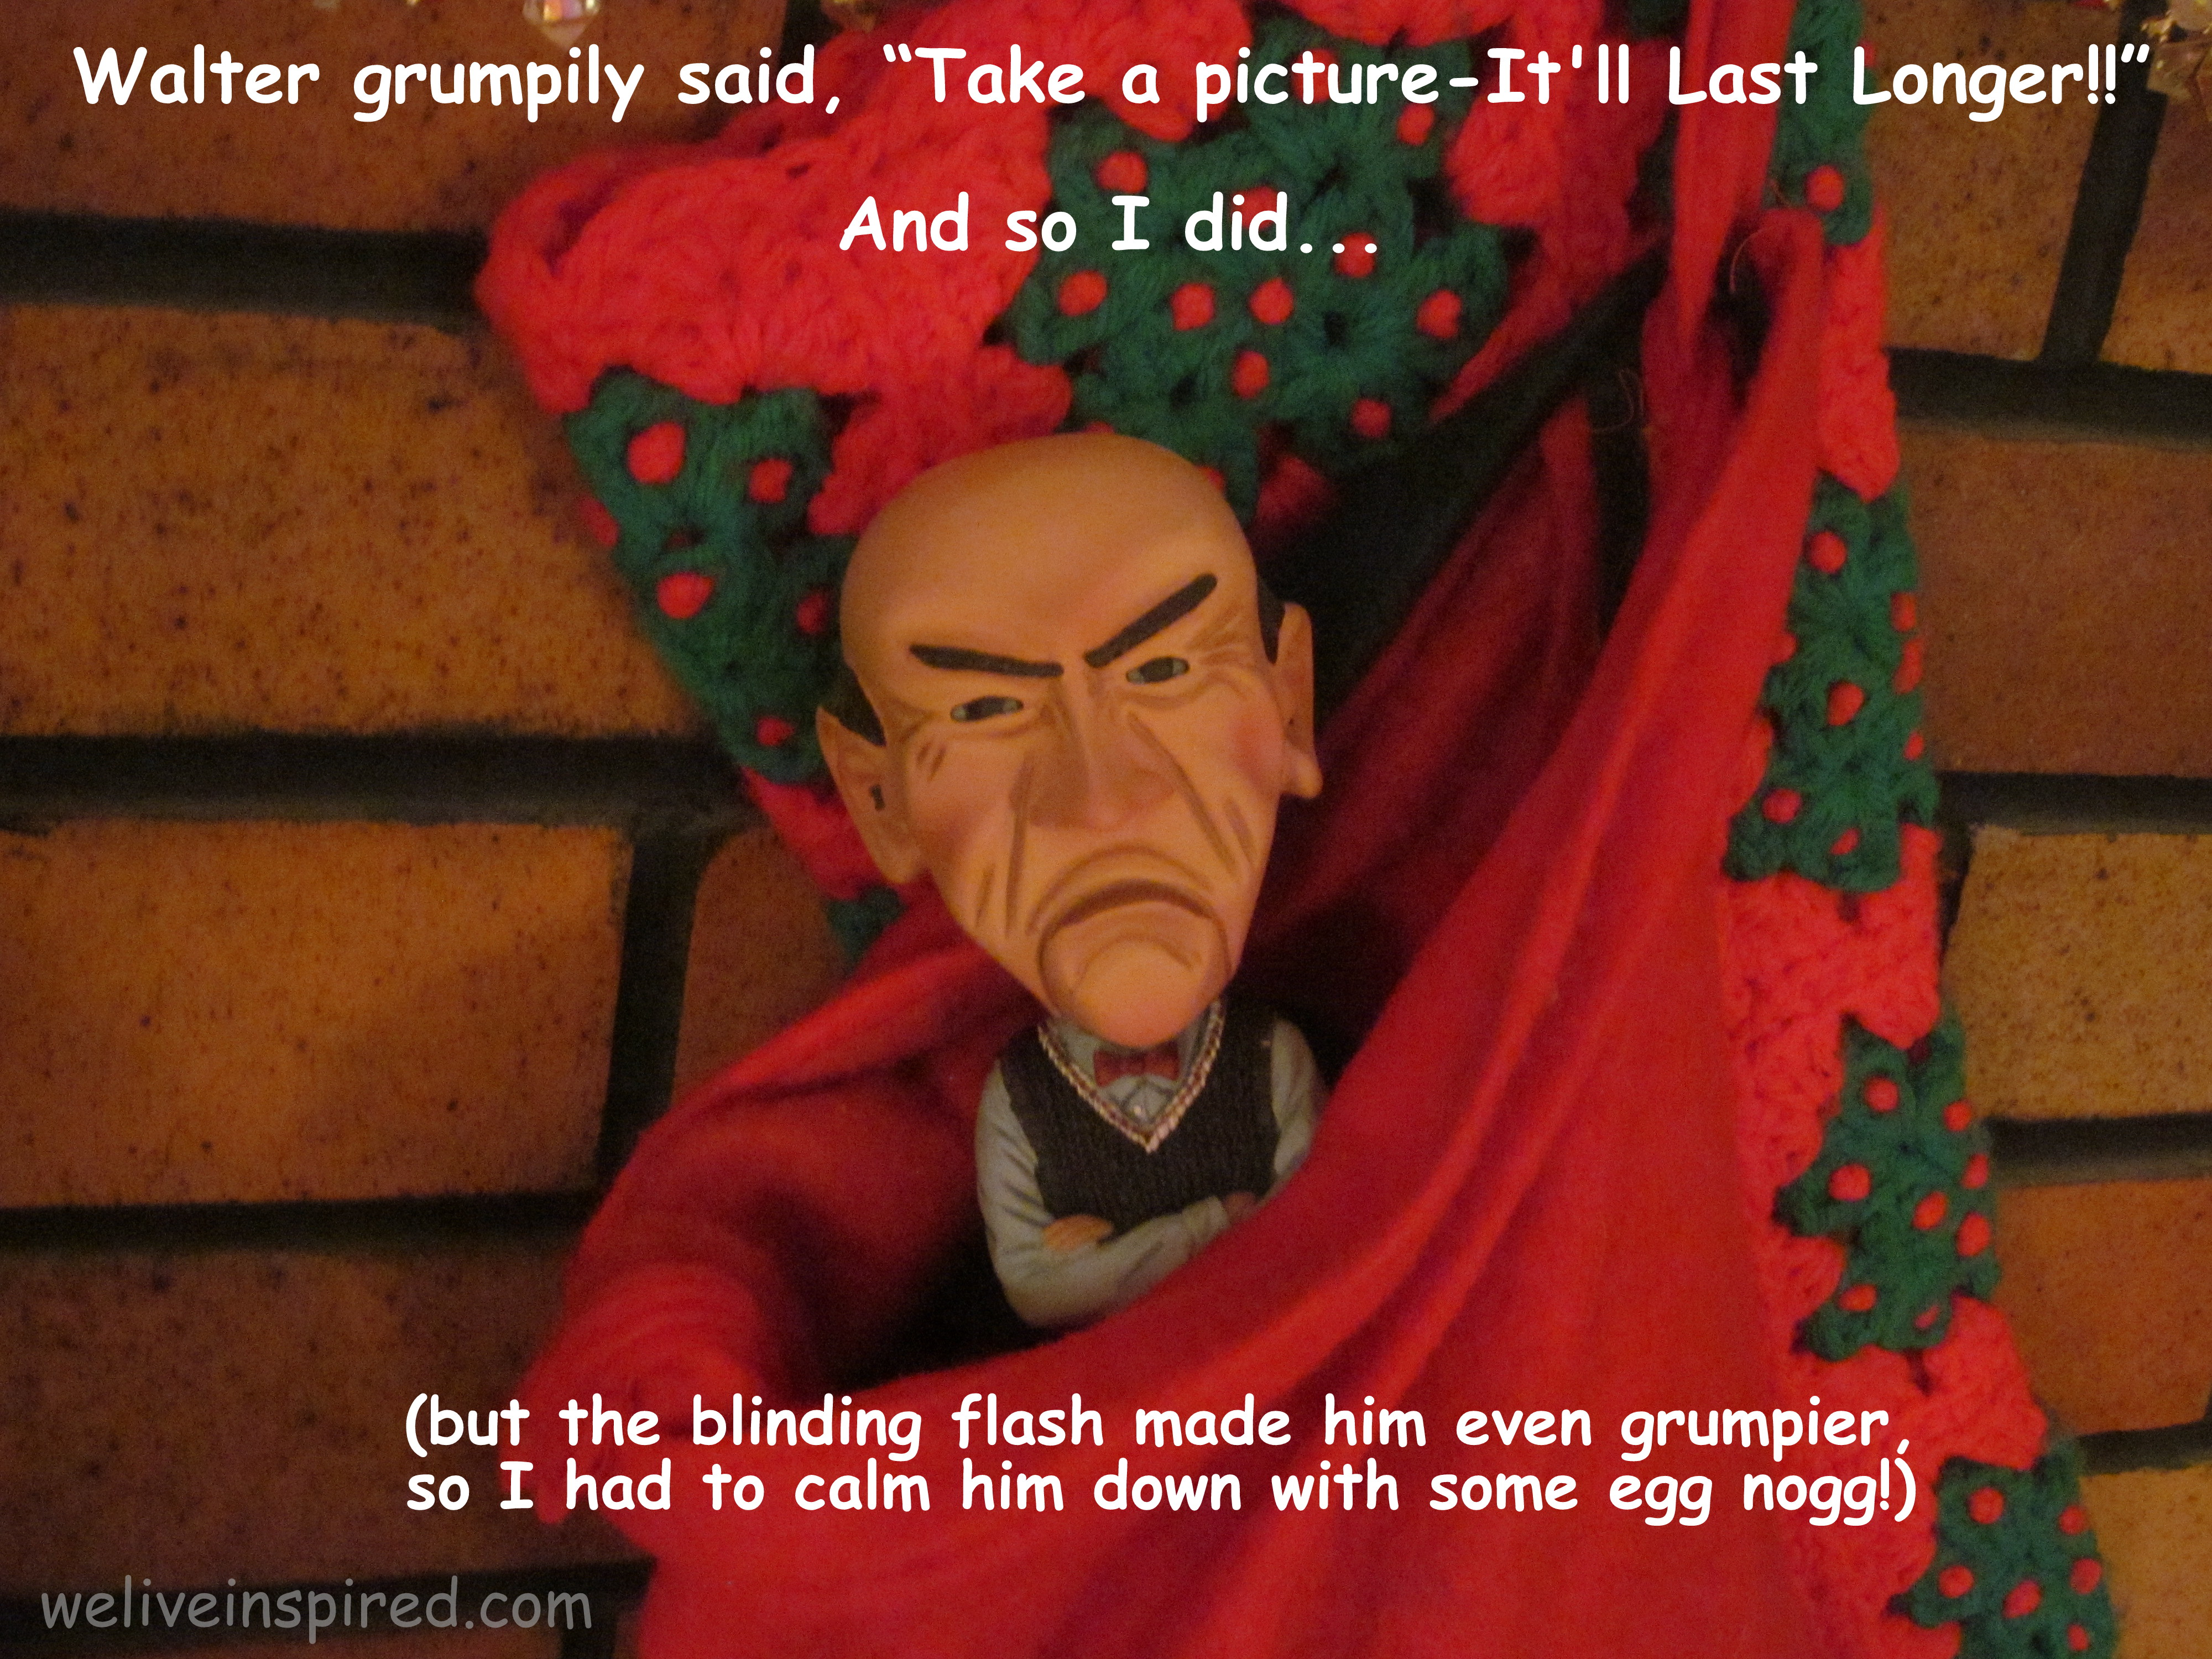 Walter the Christmas Curmudgeon & Other Stocking Pranks - We Live ...